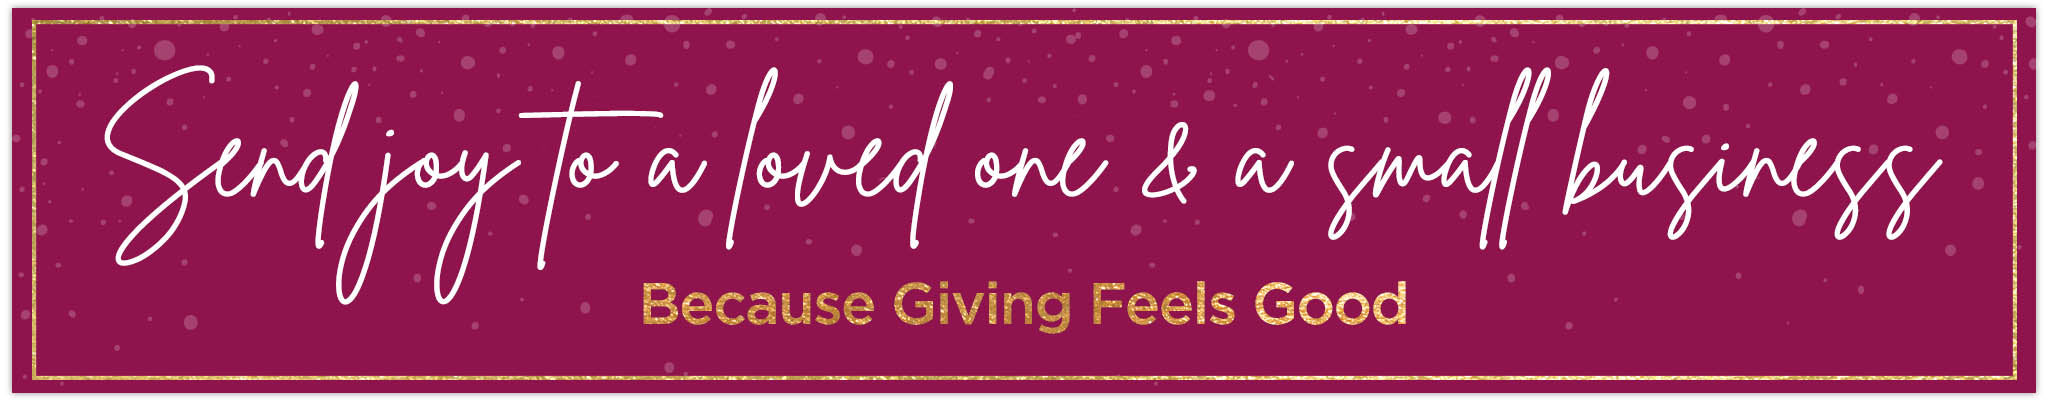 Send joy to a loved one & a small business | Because giving feels good